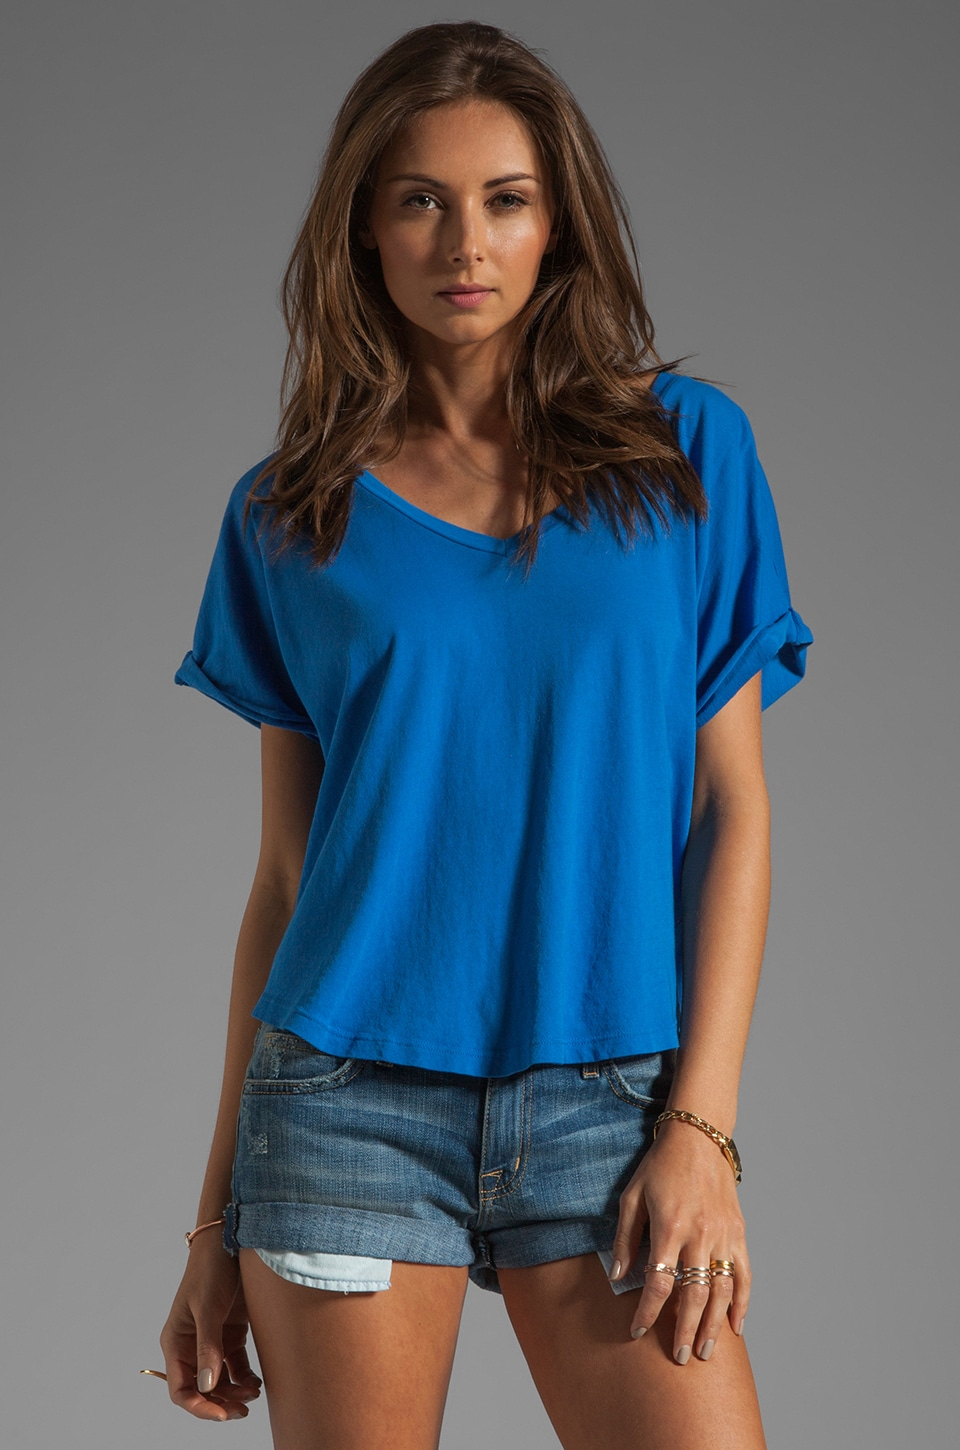 C&C California Cap Sleeve Double V-Neck Tee in French Blue